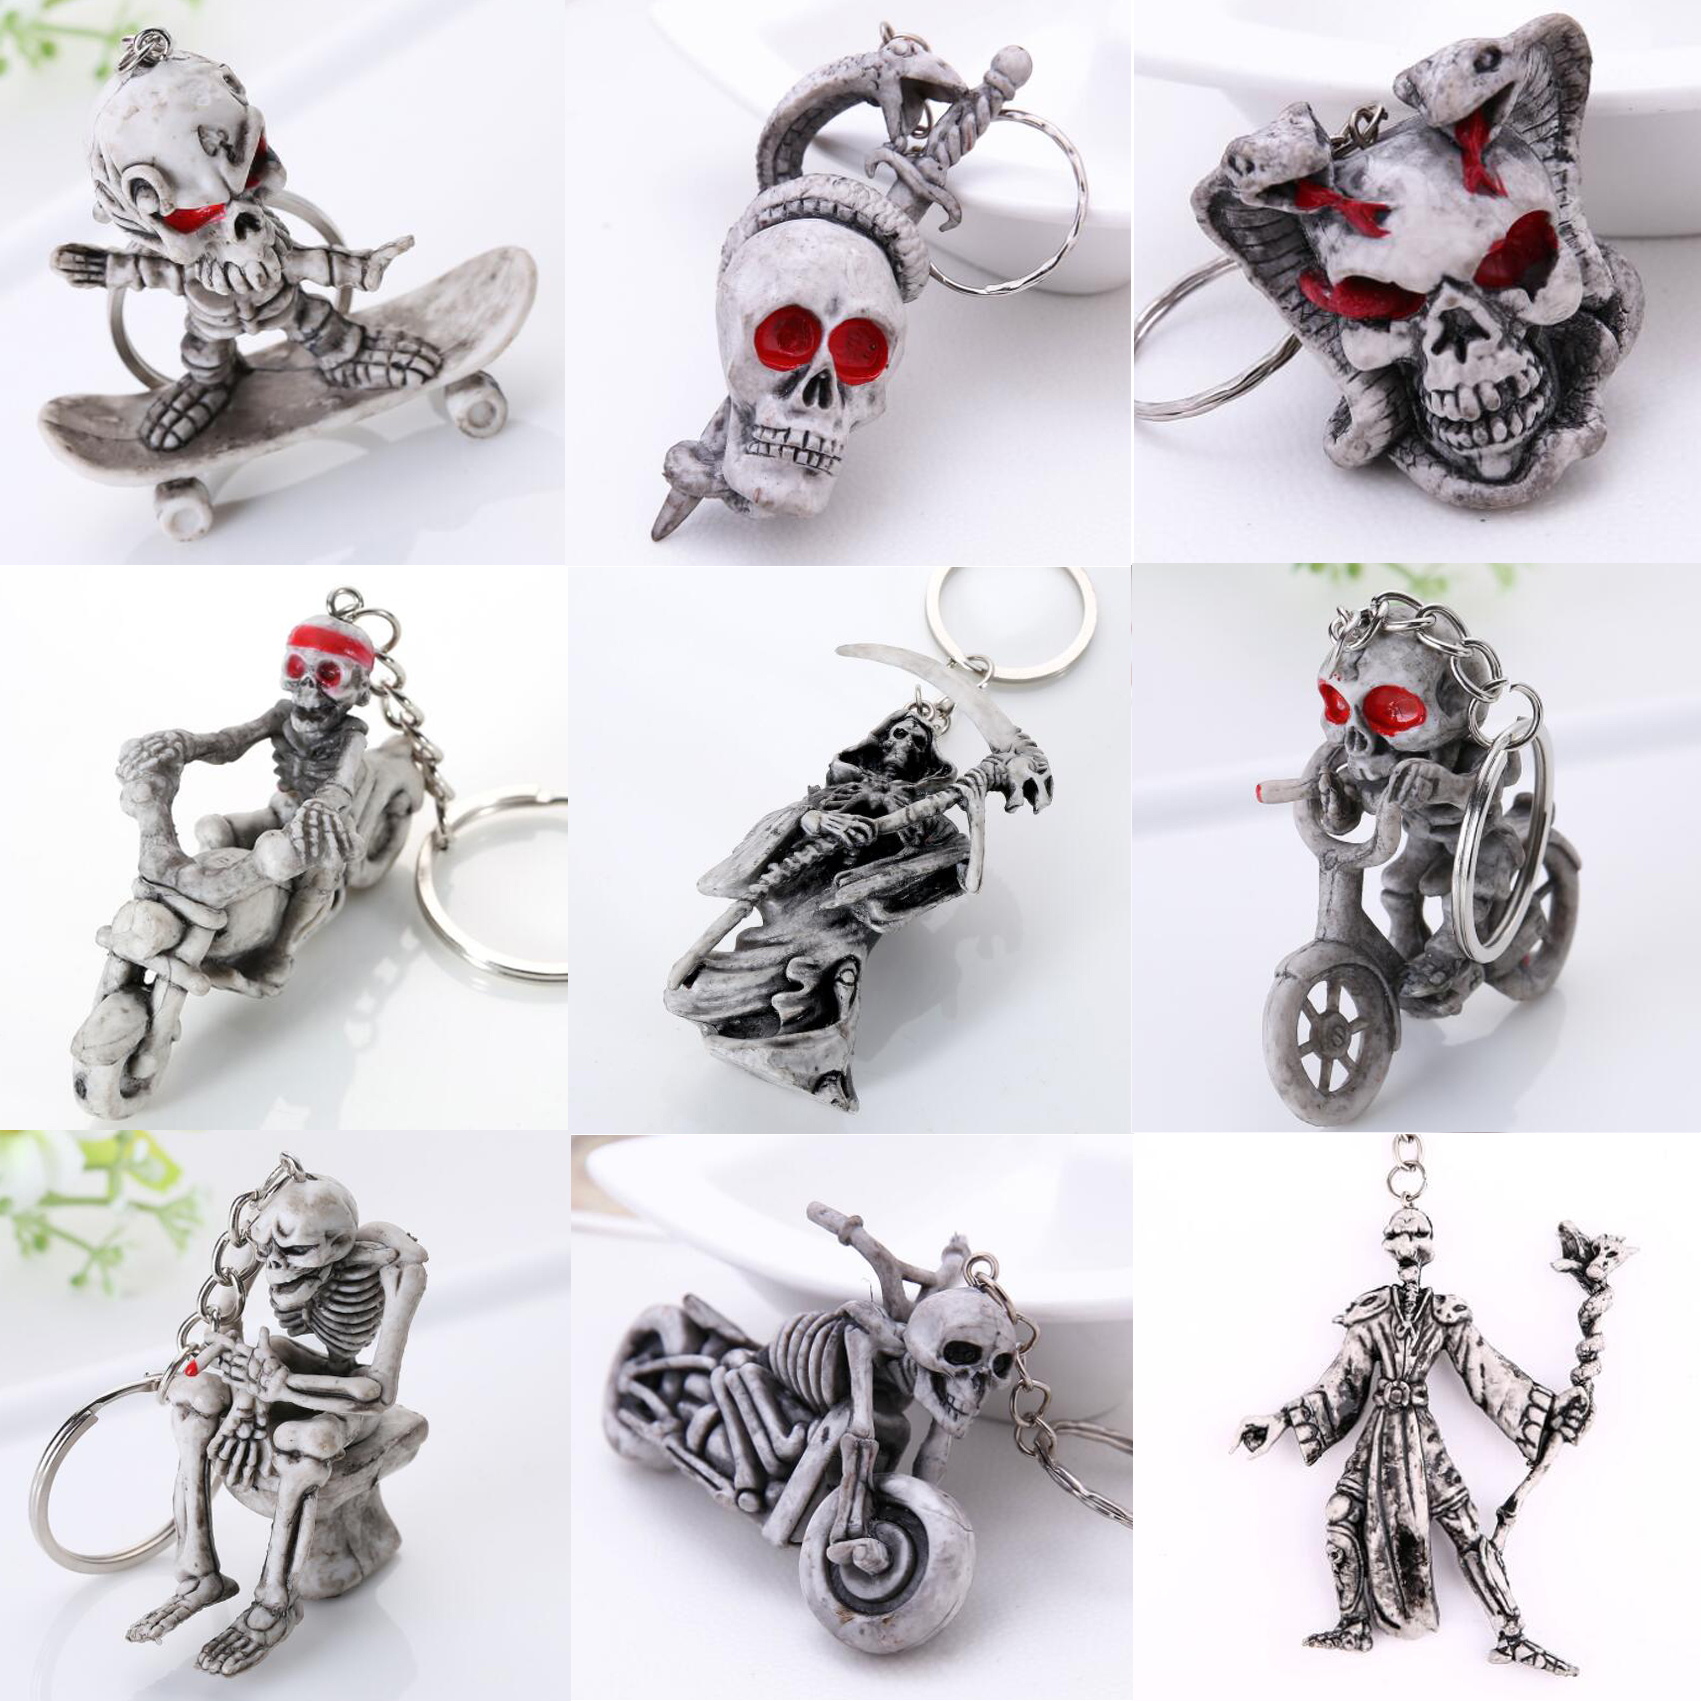 Keychain For Men Skull Zombie Undead Snare Scary Fashion Funny Cute Cartoon Car Bag KeyRing Jewelry Gift